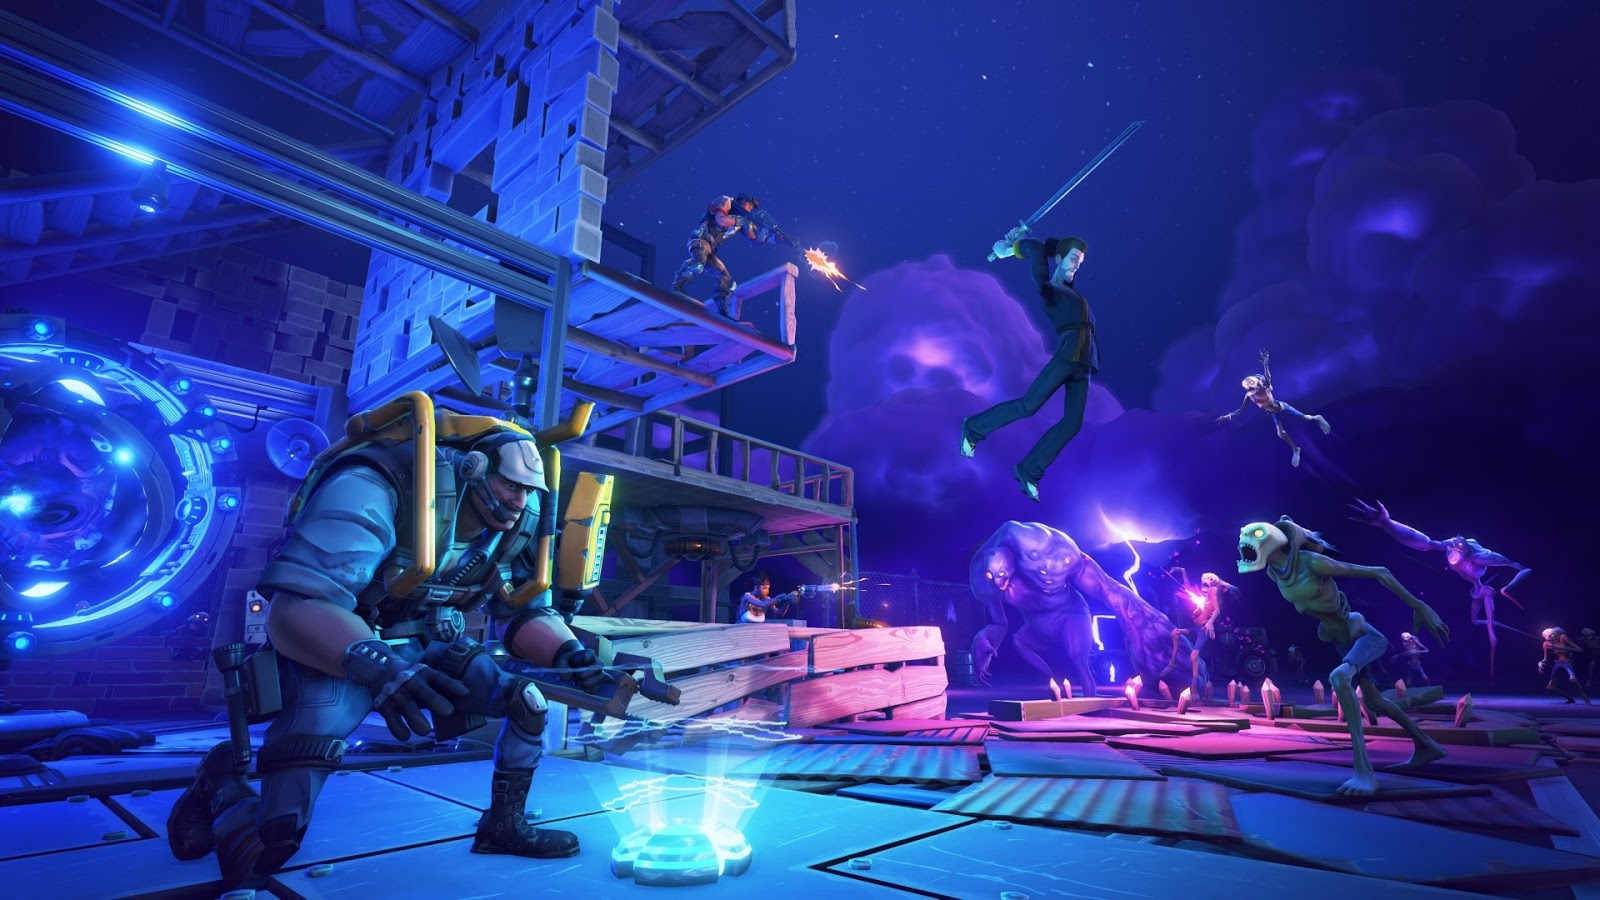 Download Fortnite HD Wallpapers Playstation Xbox and PC 1600x900